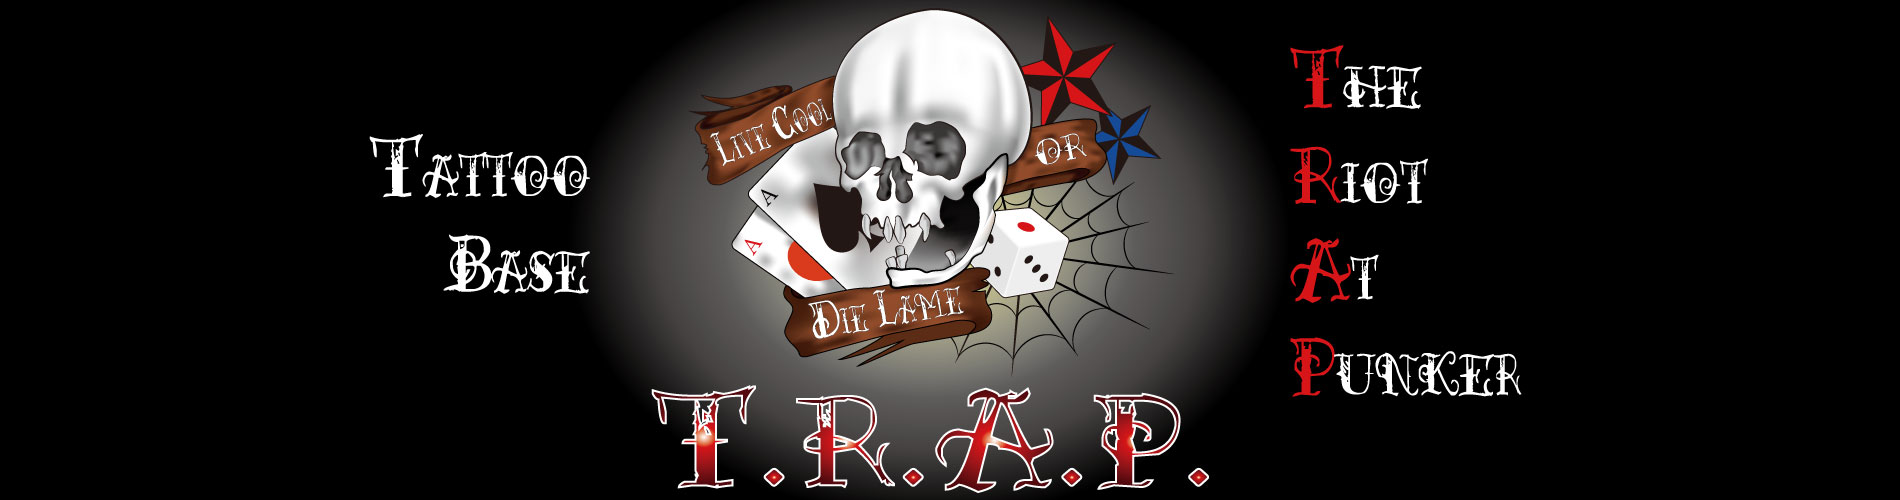 Tattoo Base T.R.A.P.【-The.Riot.At.Punker-】